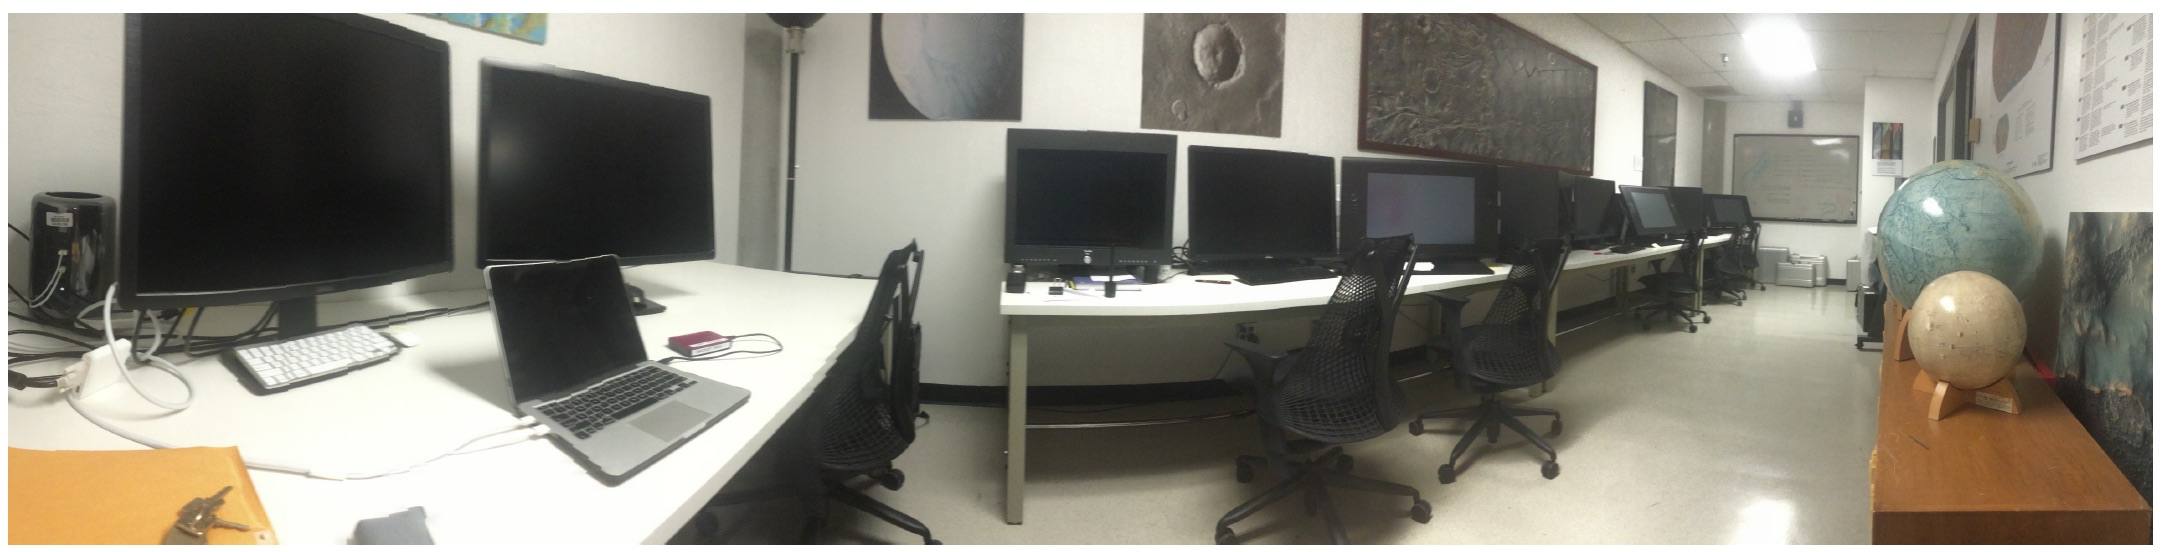 Producing Stereo Derived DTMs Through Socet Set Also Requires Specialized  Hardware. Our Current Facility Has Acquired 3 Specialized Workstations To  Run 3 Of ...